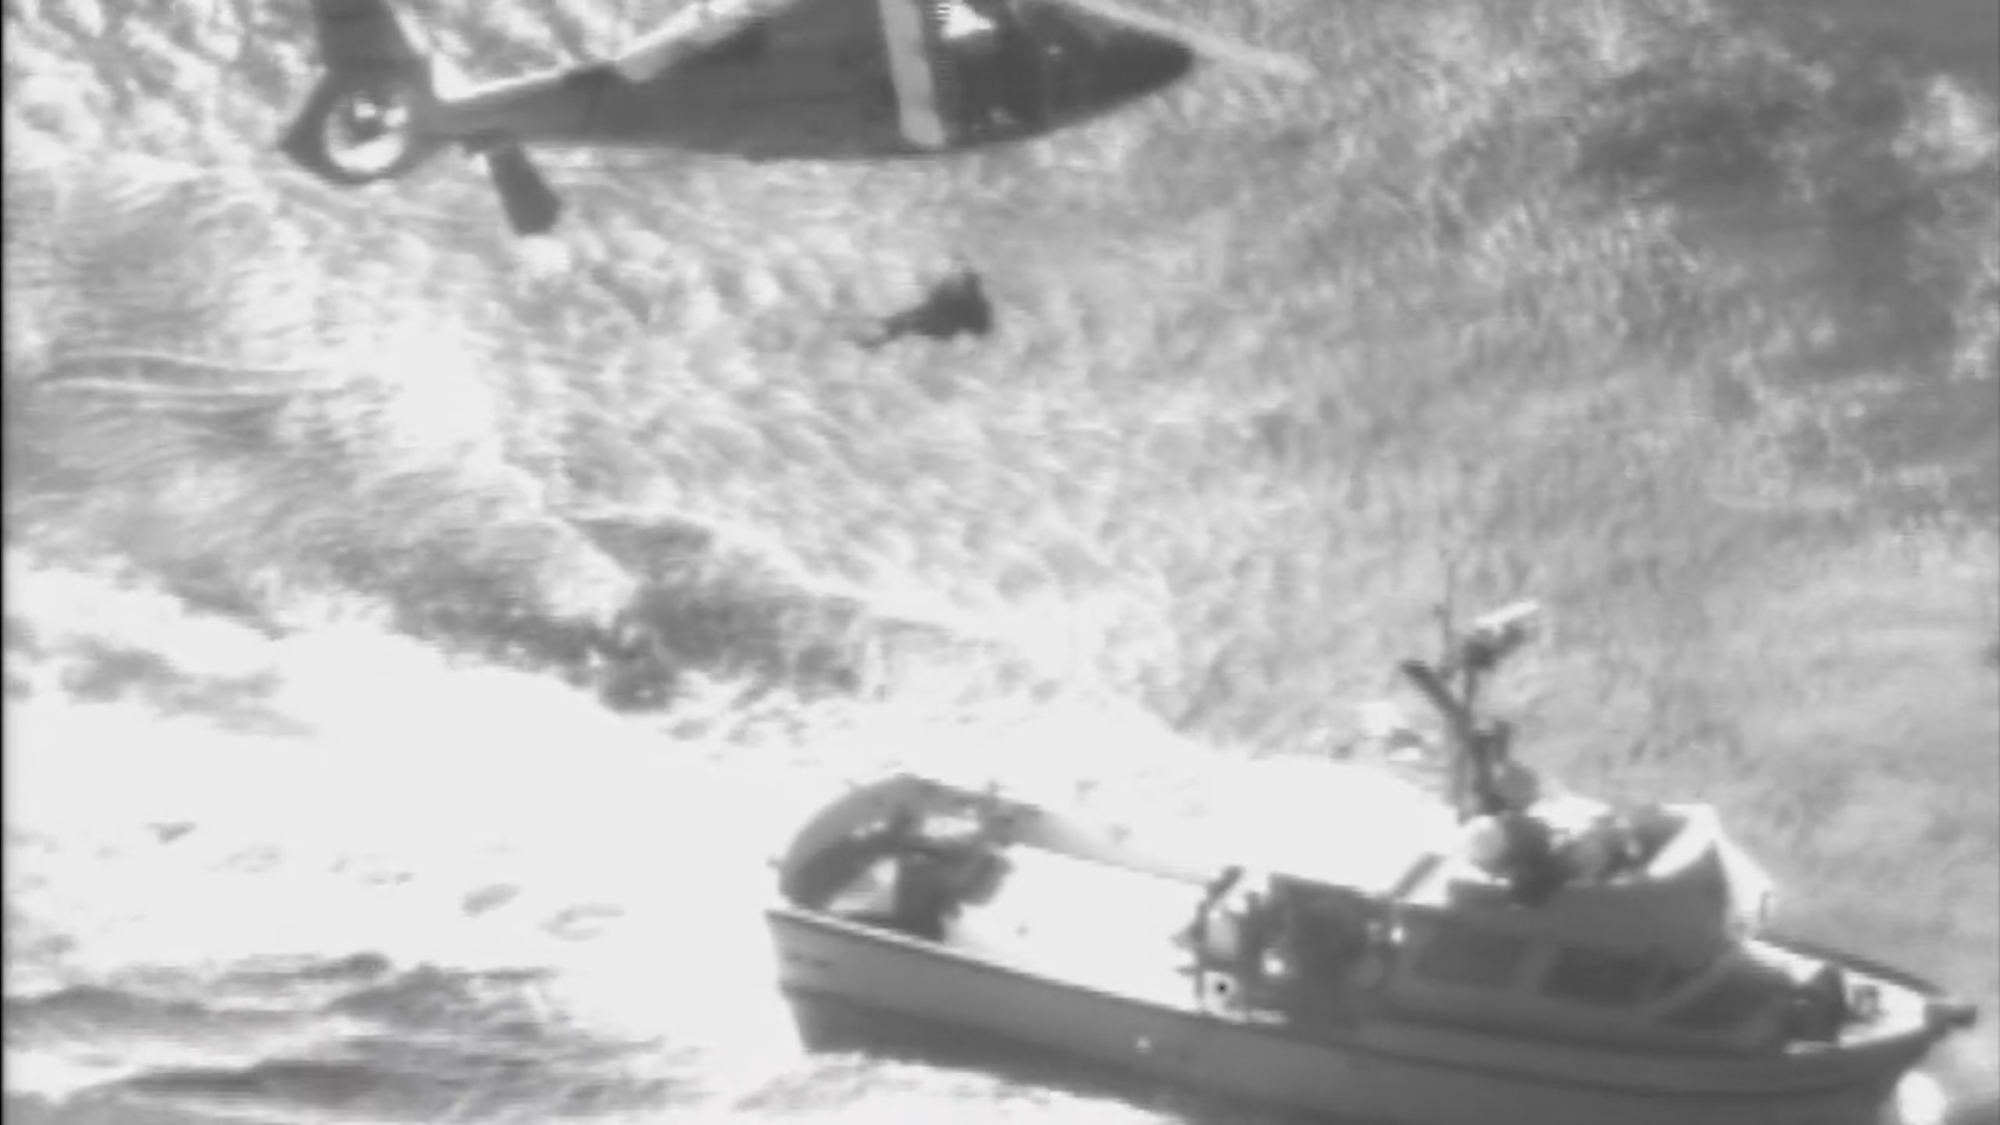 VIDEO: Helicopter Rescues Injured Mariner Off Hawaiian Coast